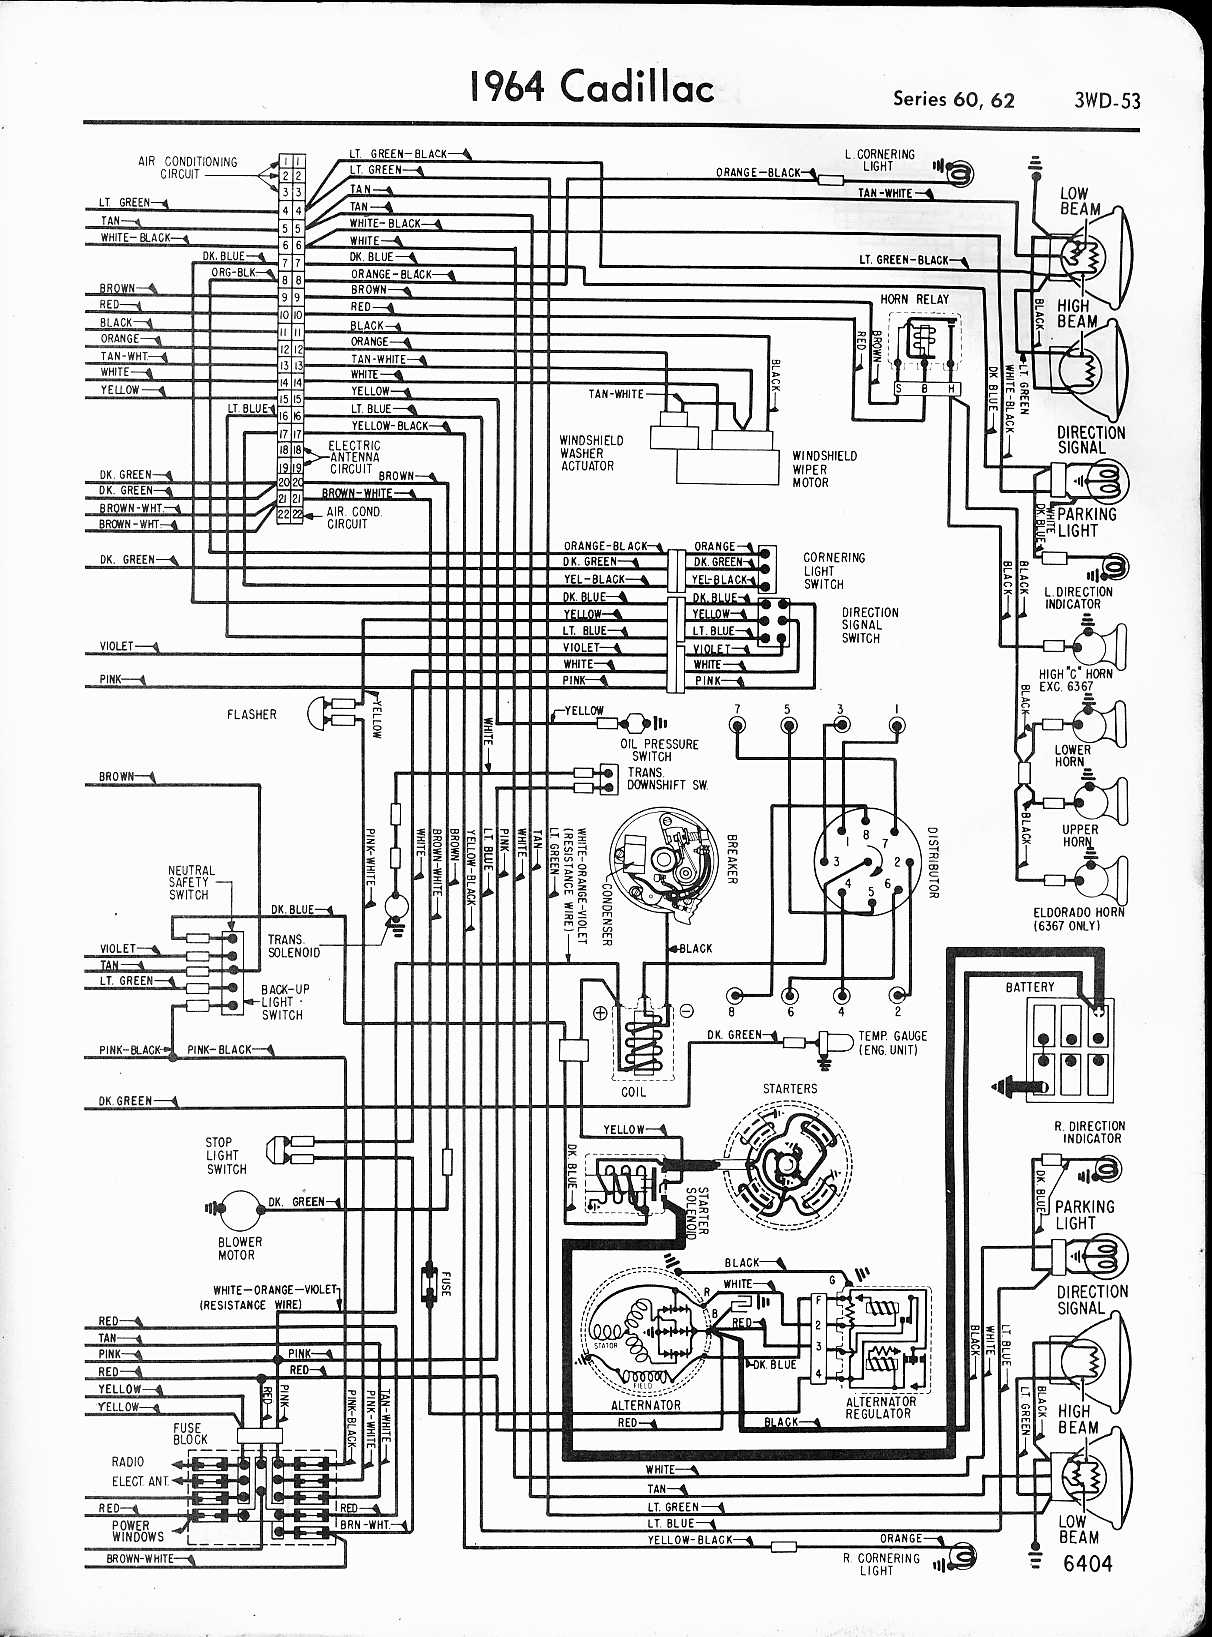 Cadillac Wiring Diagrams 1957 1965 Chrysler Voltage Regulator Diagram 1964 Series 60 62 Left